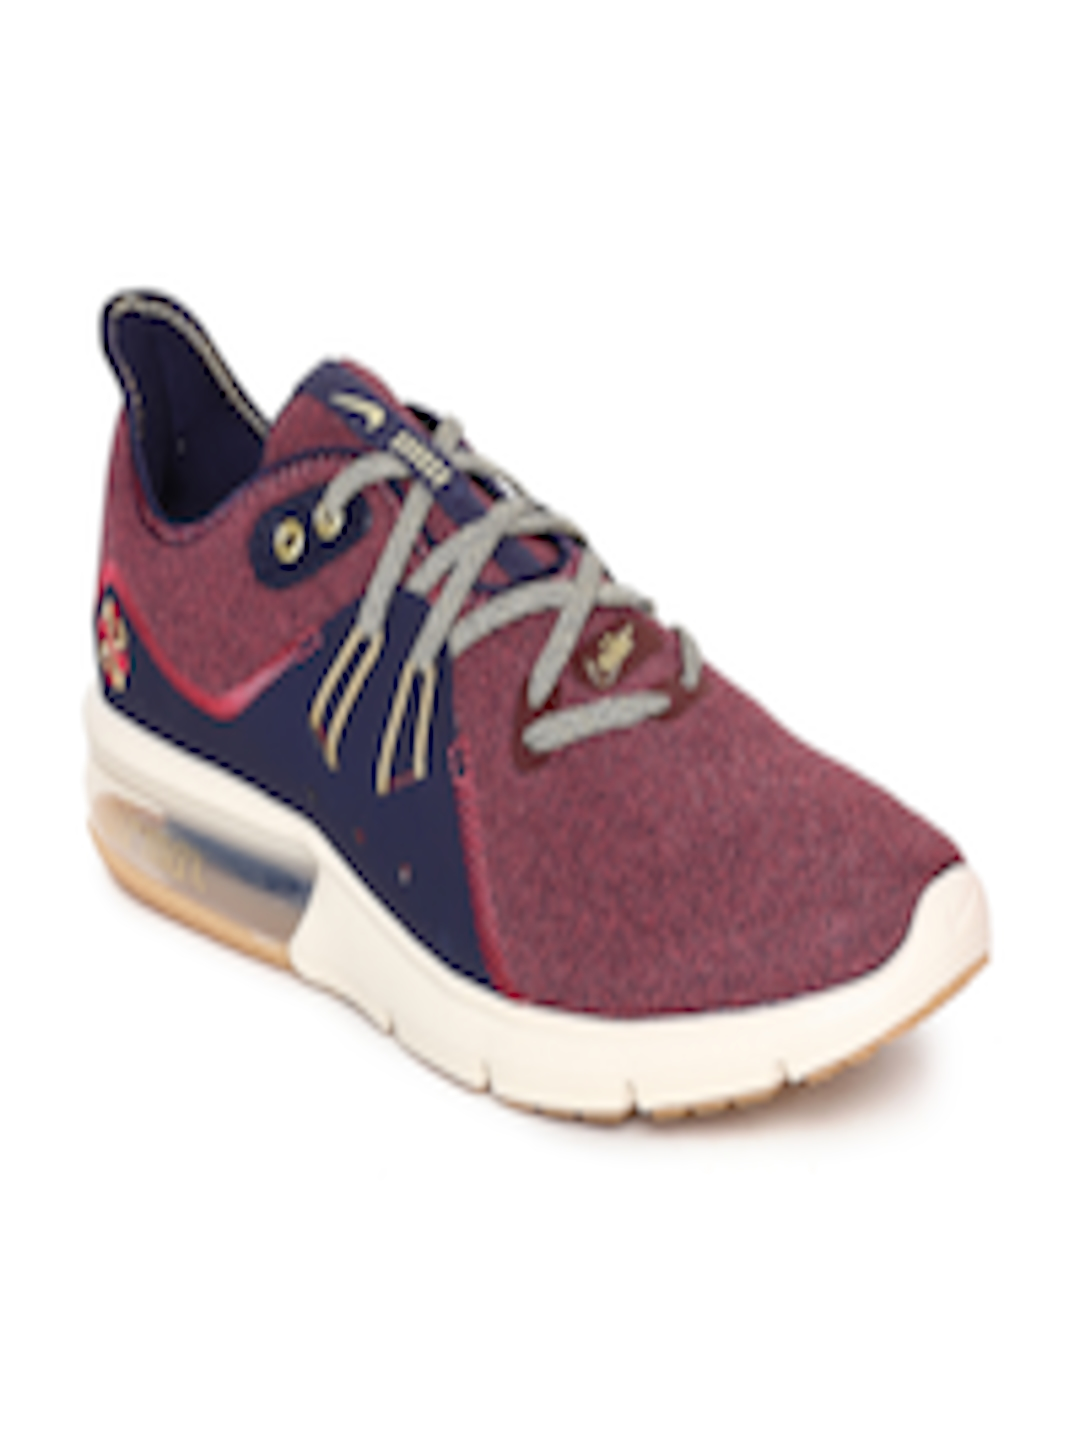 best sneakers 16a58 f59b7 Buy Nike Men Maroon & Navy Air Max Sequent 3 PRM VST Running Shoes - -  Footwear for Men